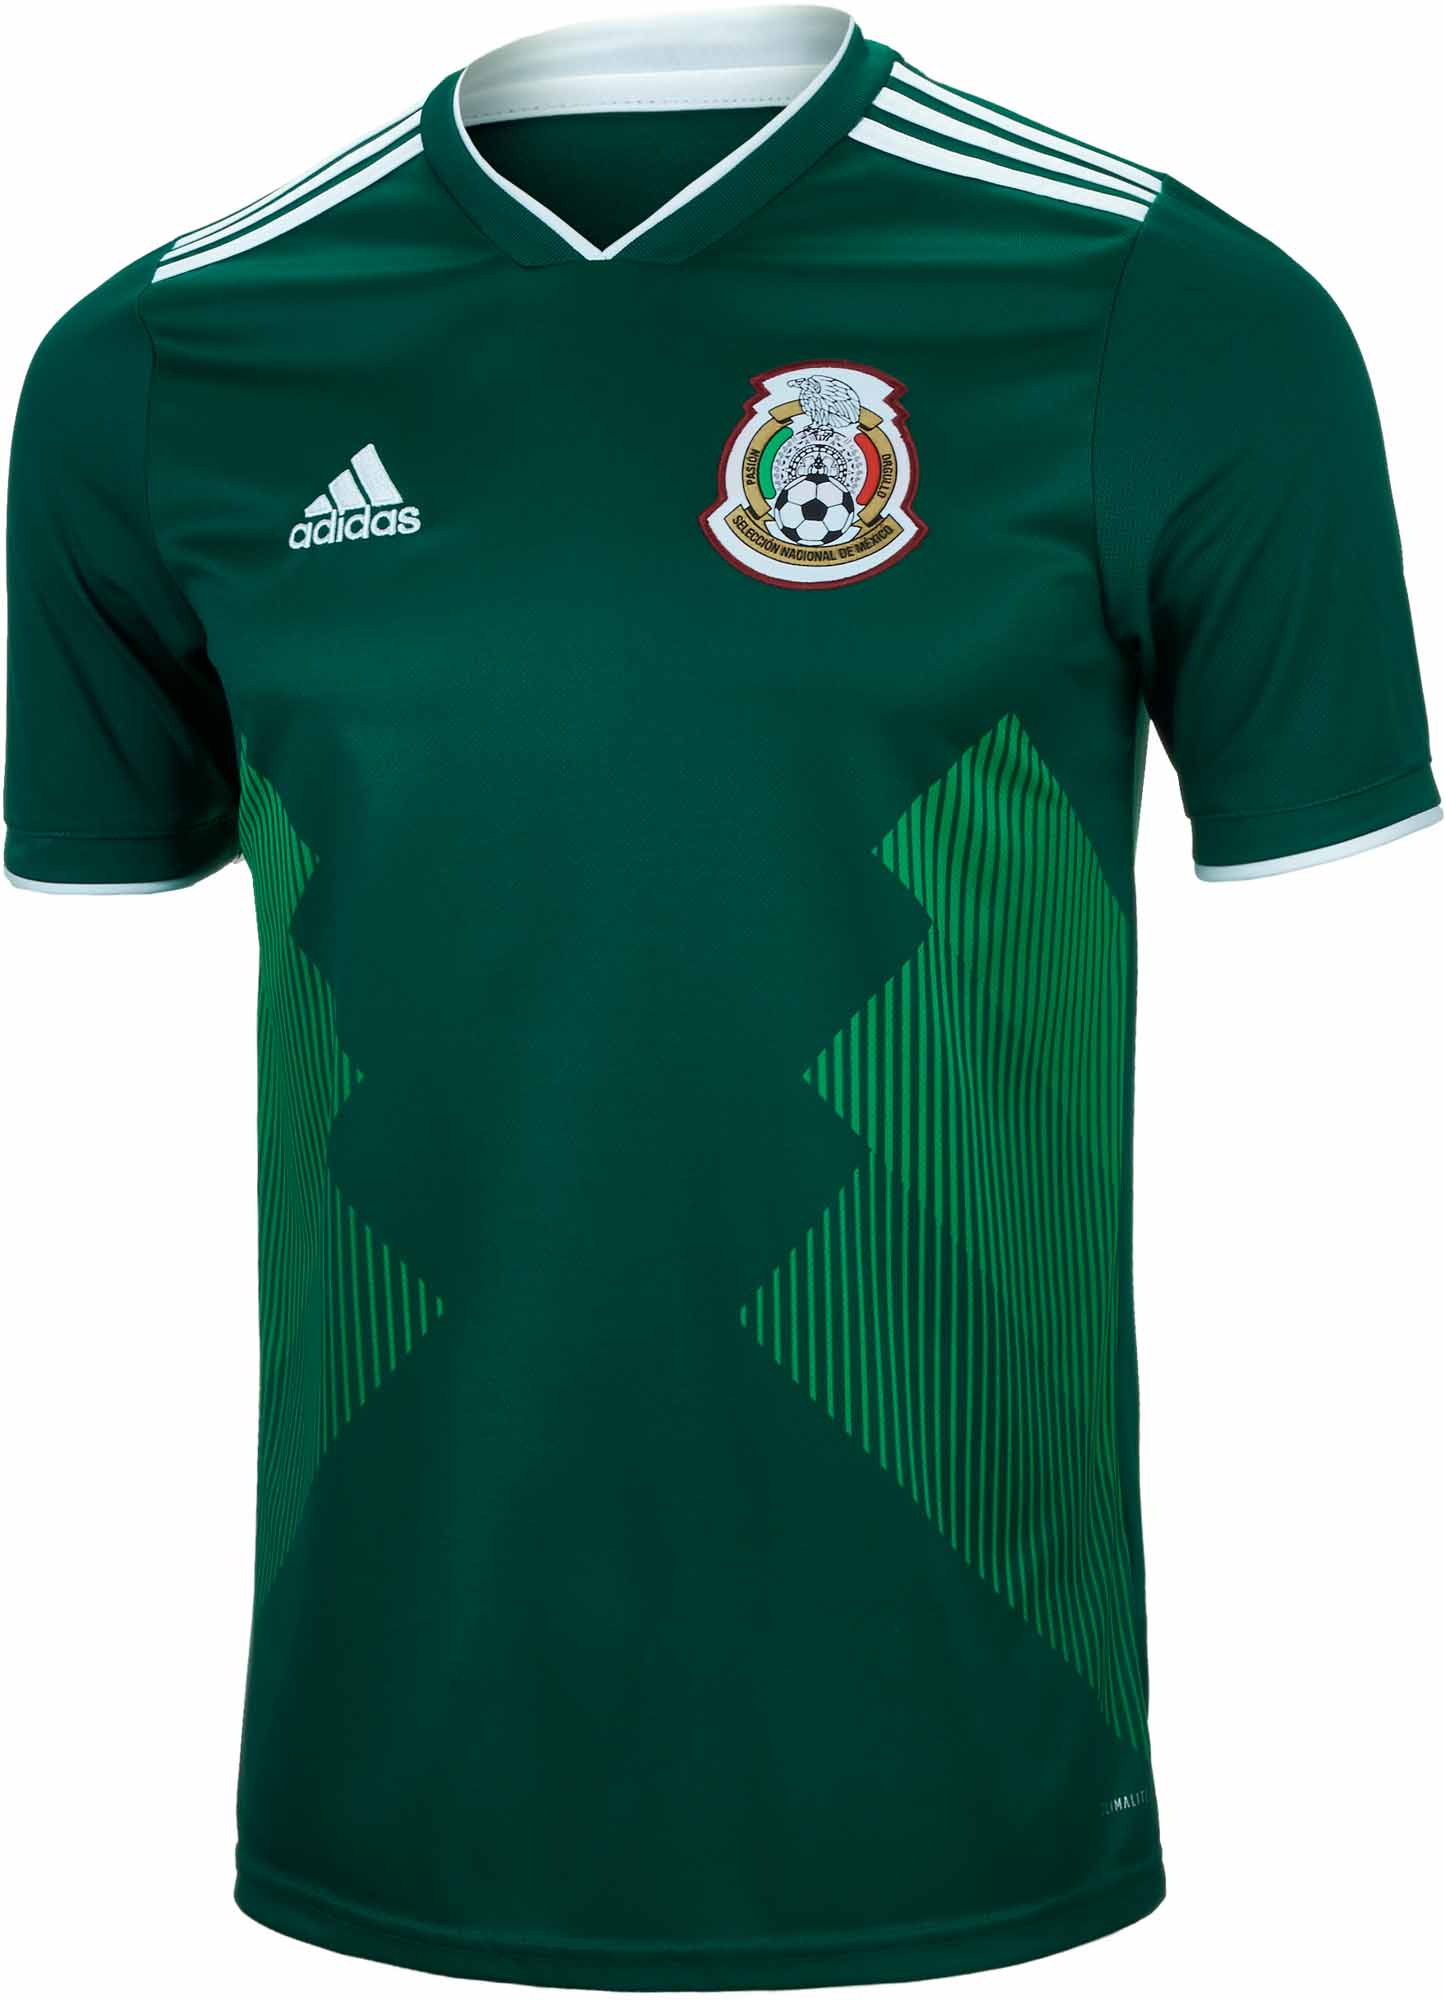 206f4bceeff adidas Mexico Home Jersey 2018-19 - SoccerPro.com